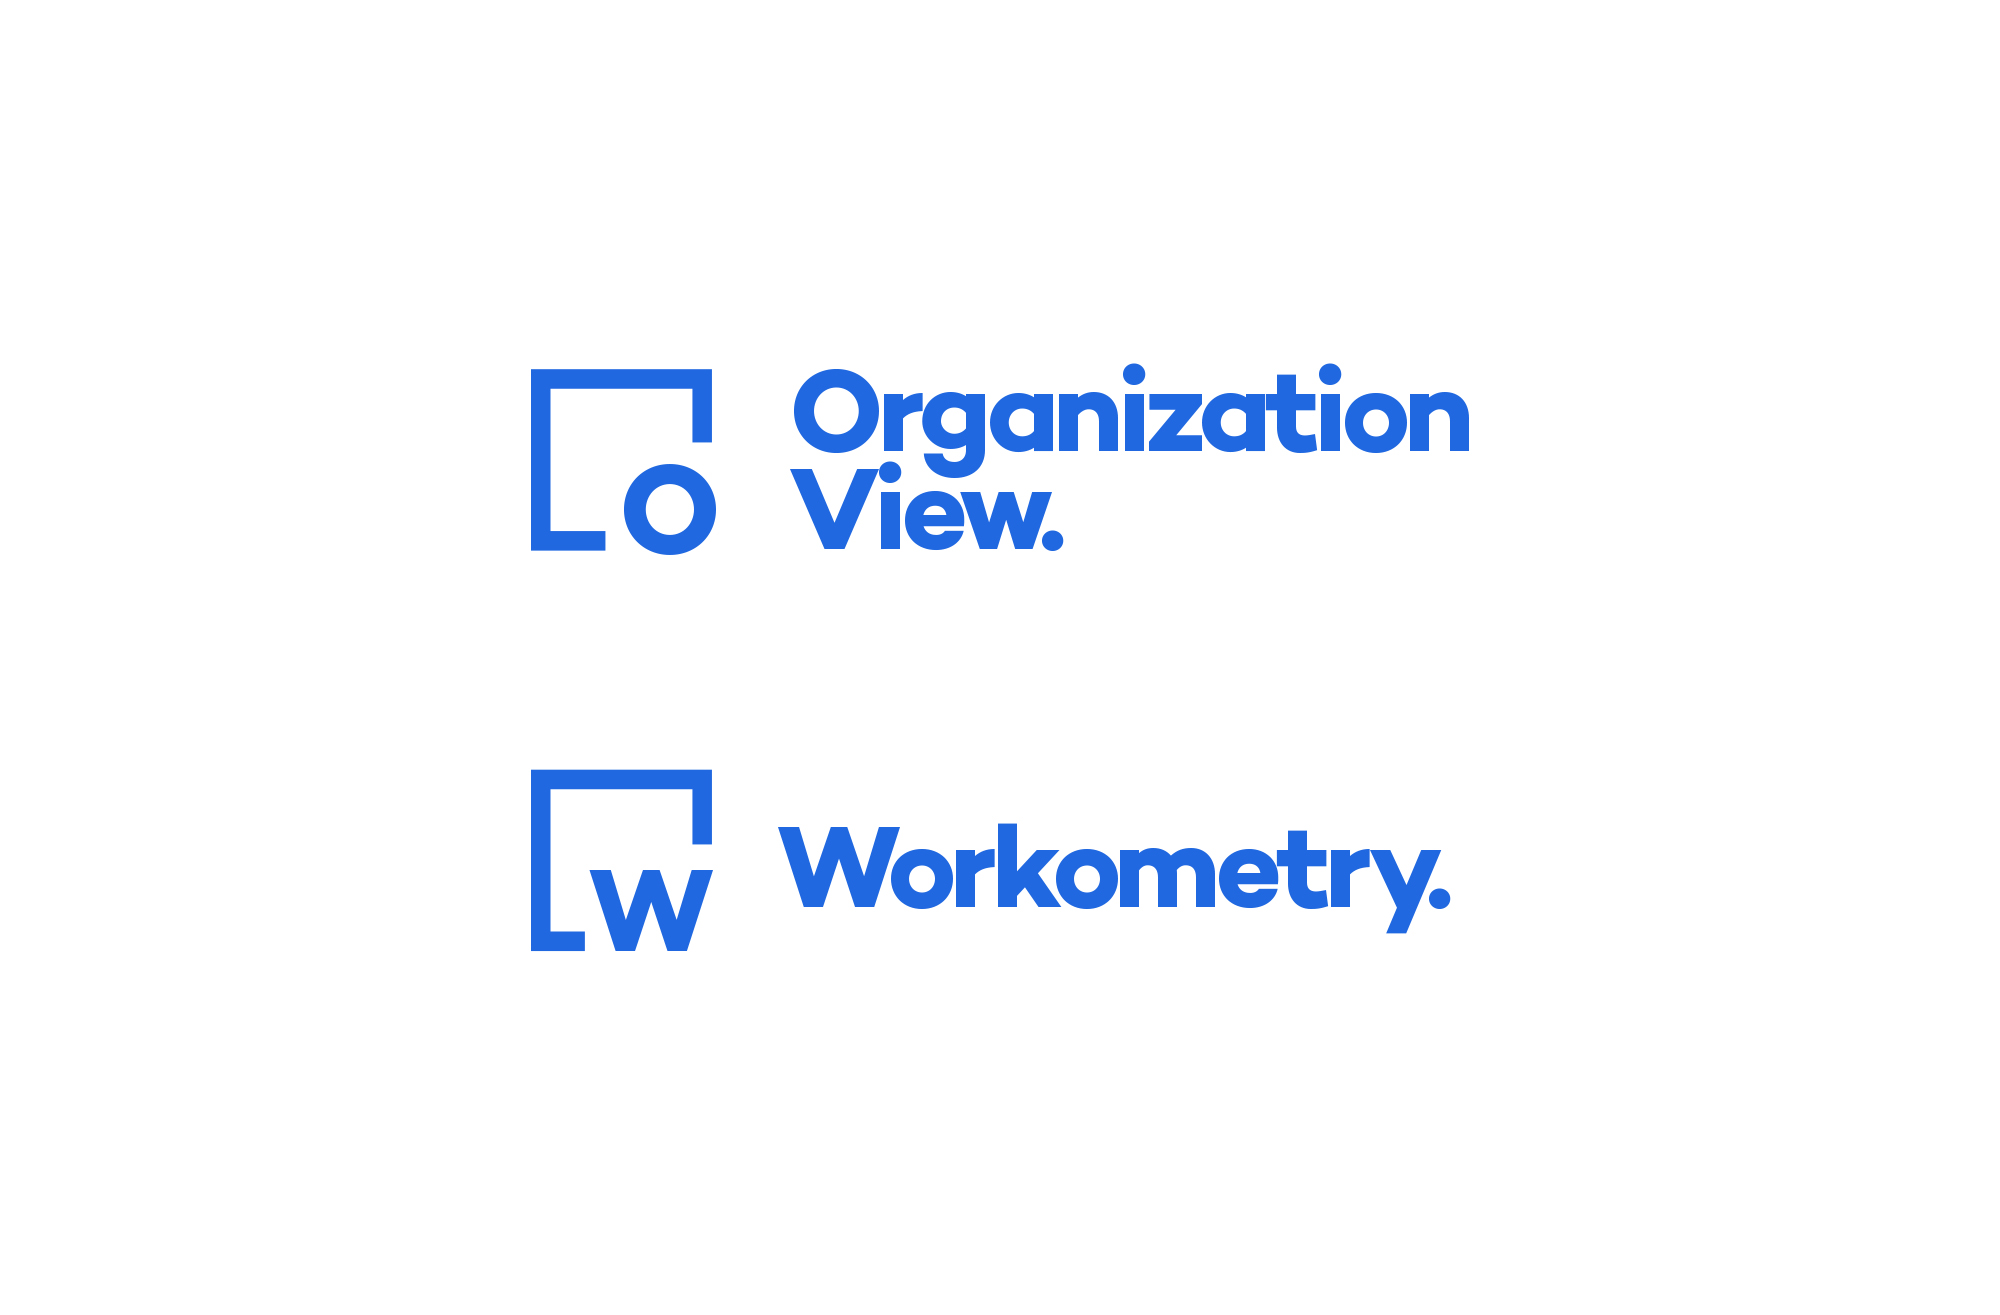 Organization_View_Logo_Development9.jpg